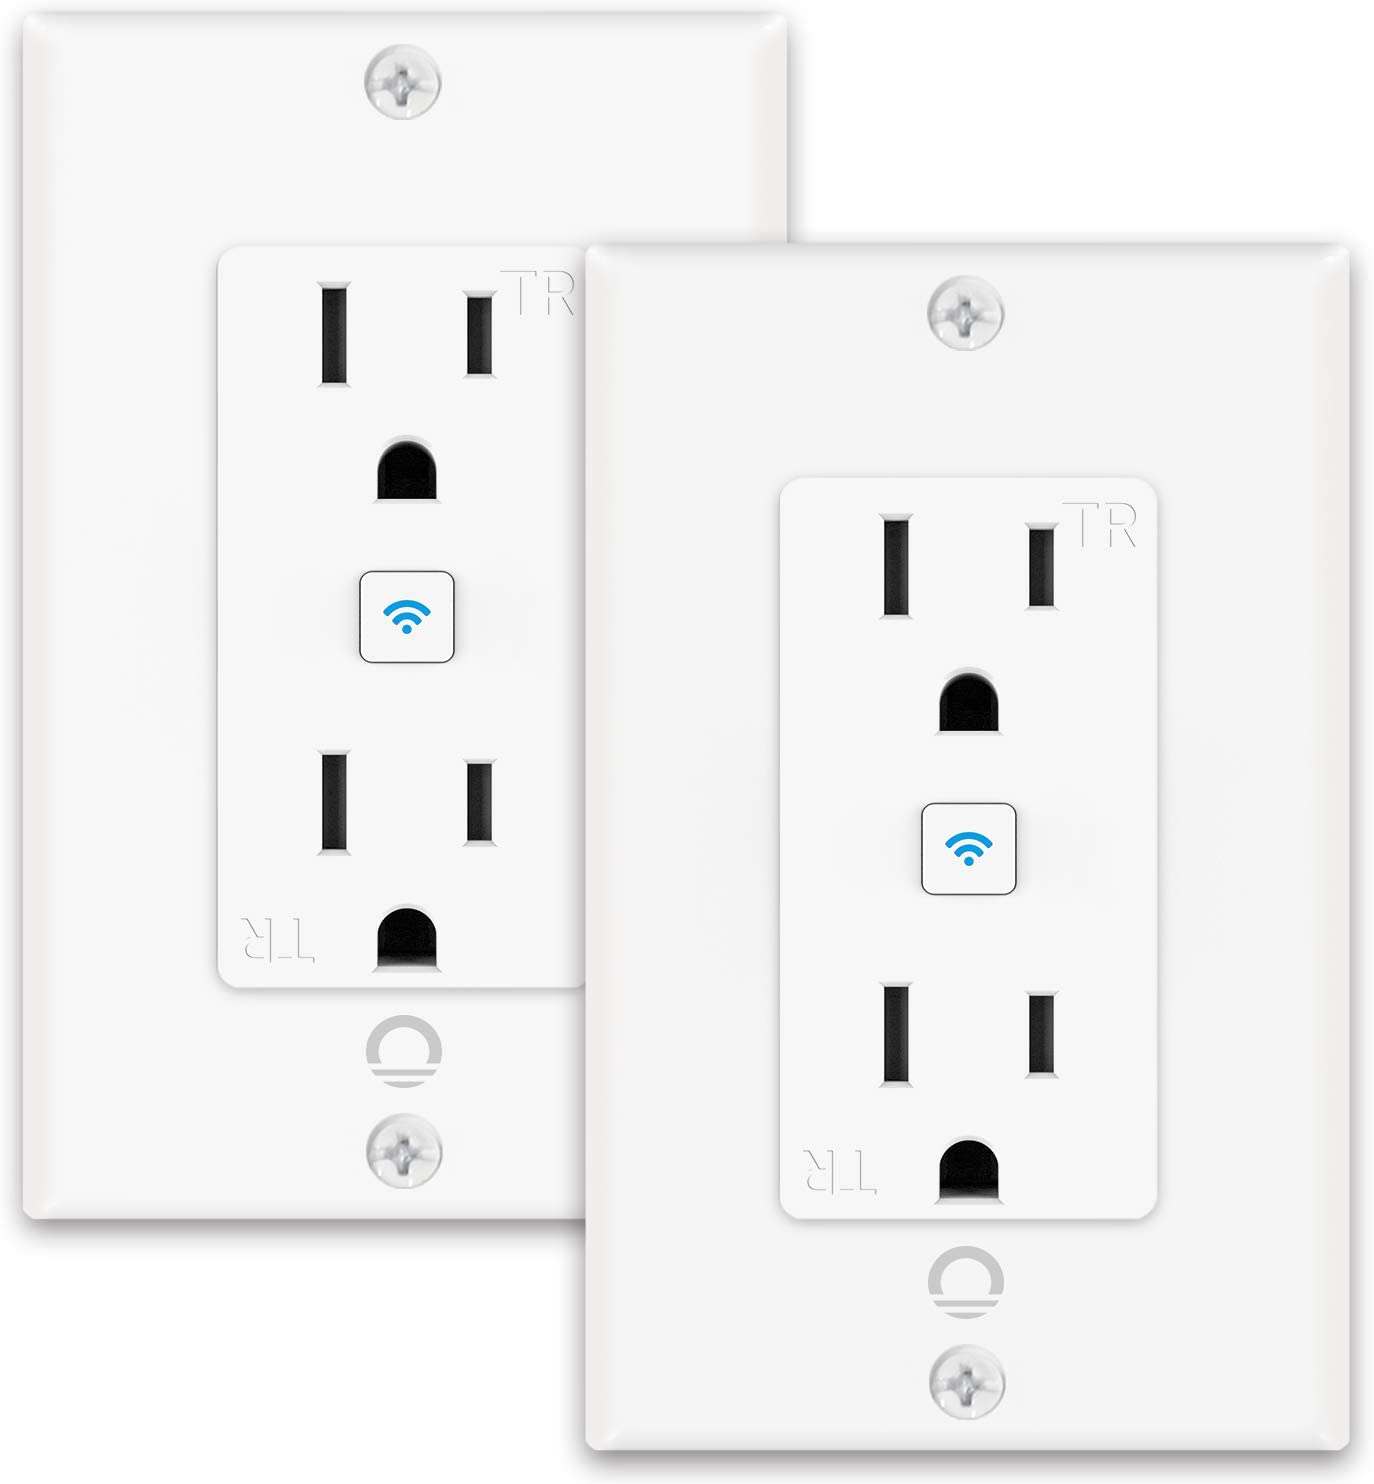 Lumary Smart WiFi In-Wall Outlet 15 Amp 125 Volt Tamper Resistant Split Duplex Receptacle, Separate Control of 2 Plugs, Compatible with Alexa, Google Home (No Hub required)